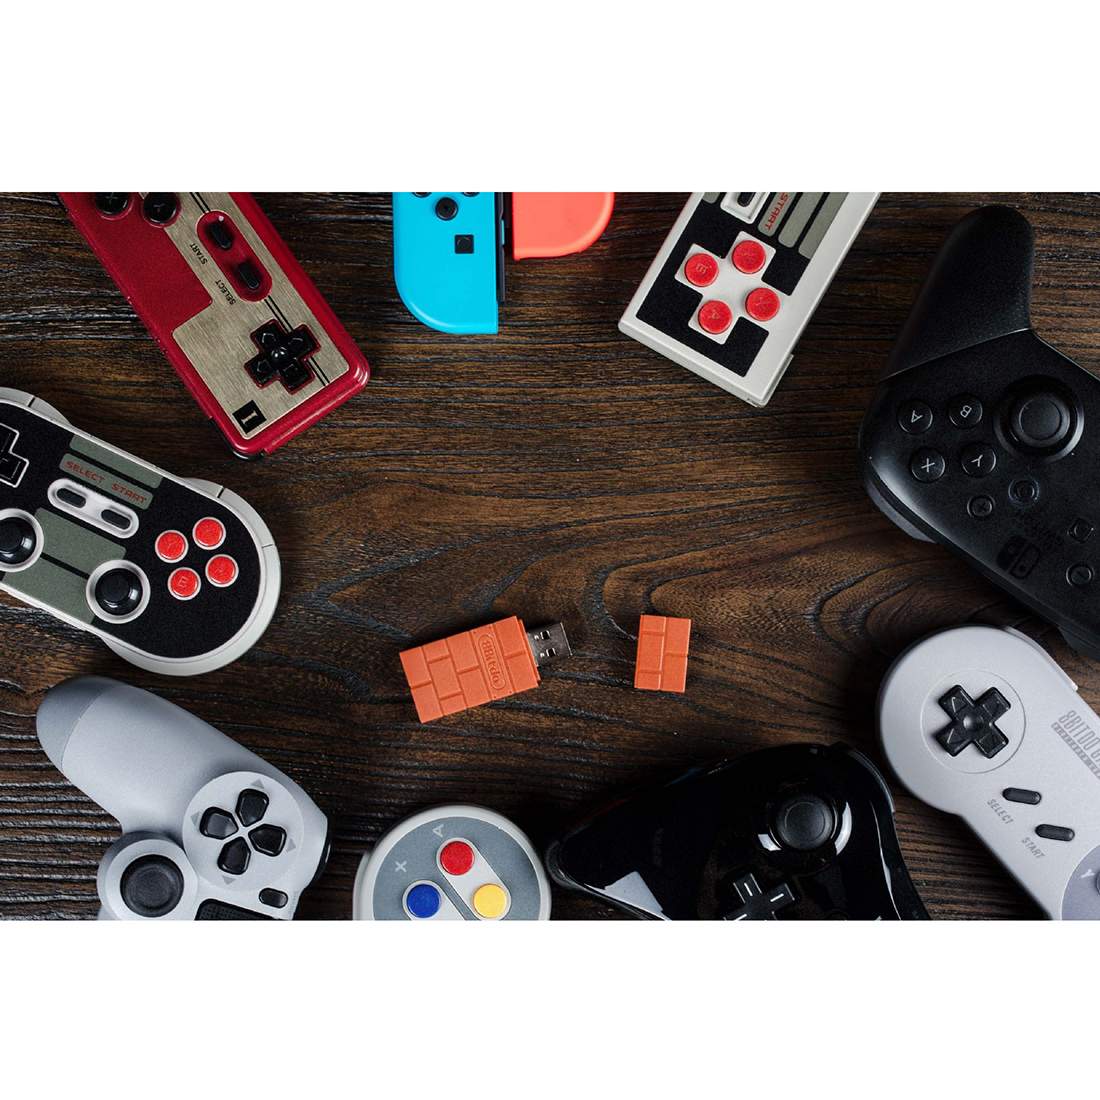 8Bitdo Wireless Bluetooth Gamepad RR Receiver USB Adapter (Wine Red)